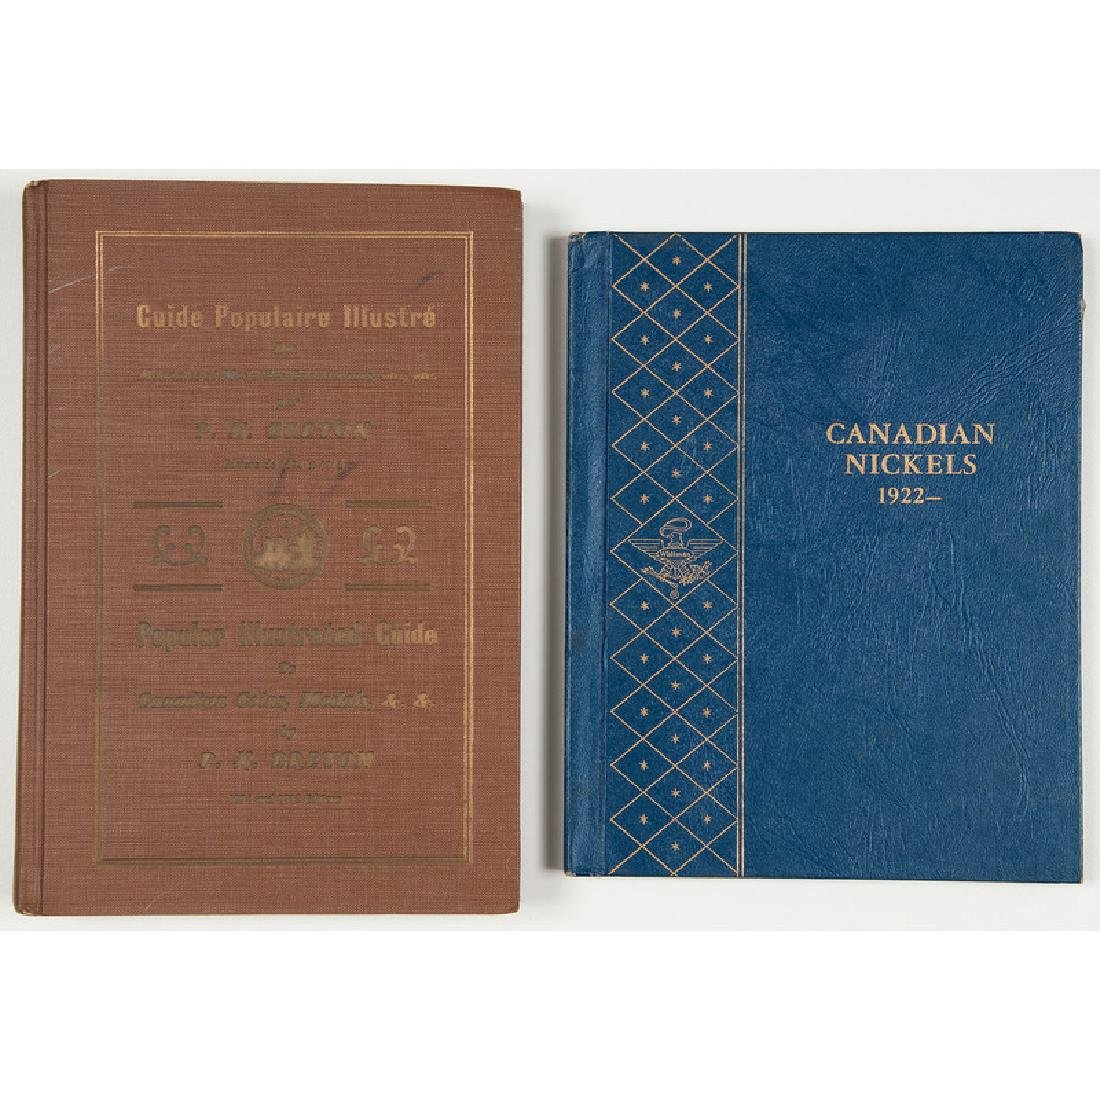 Popular Illustrated Guide to Canadian Coins, Medals, &